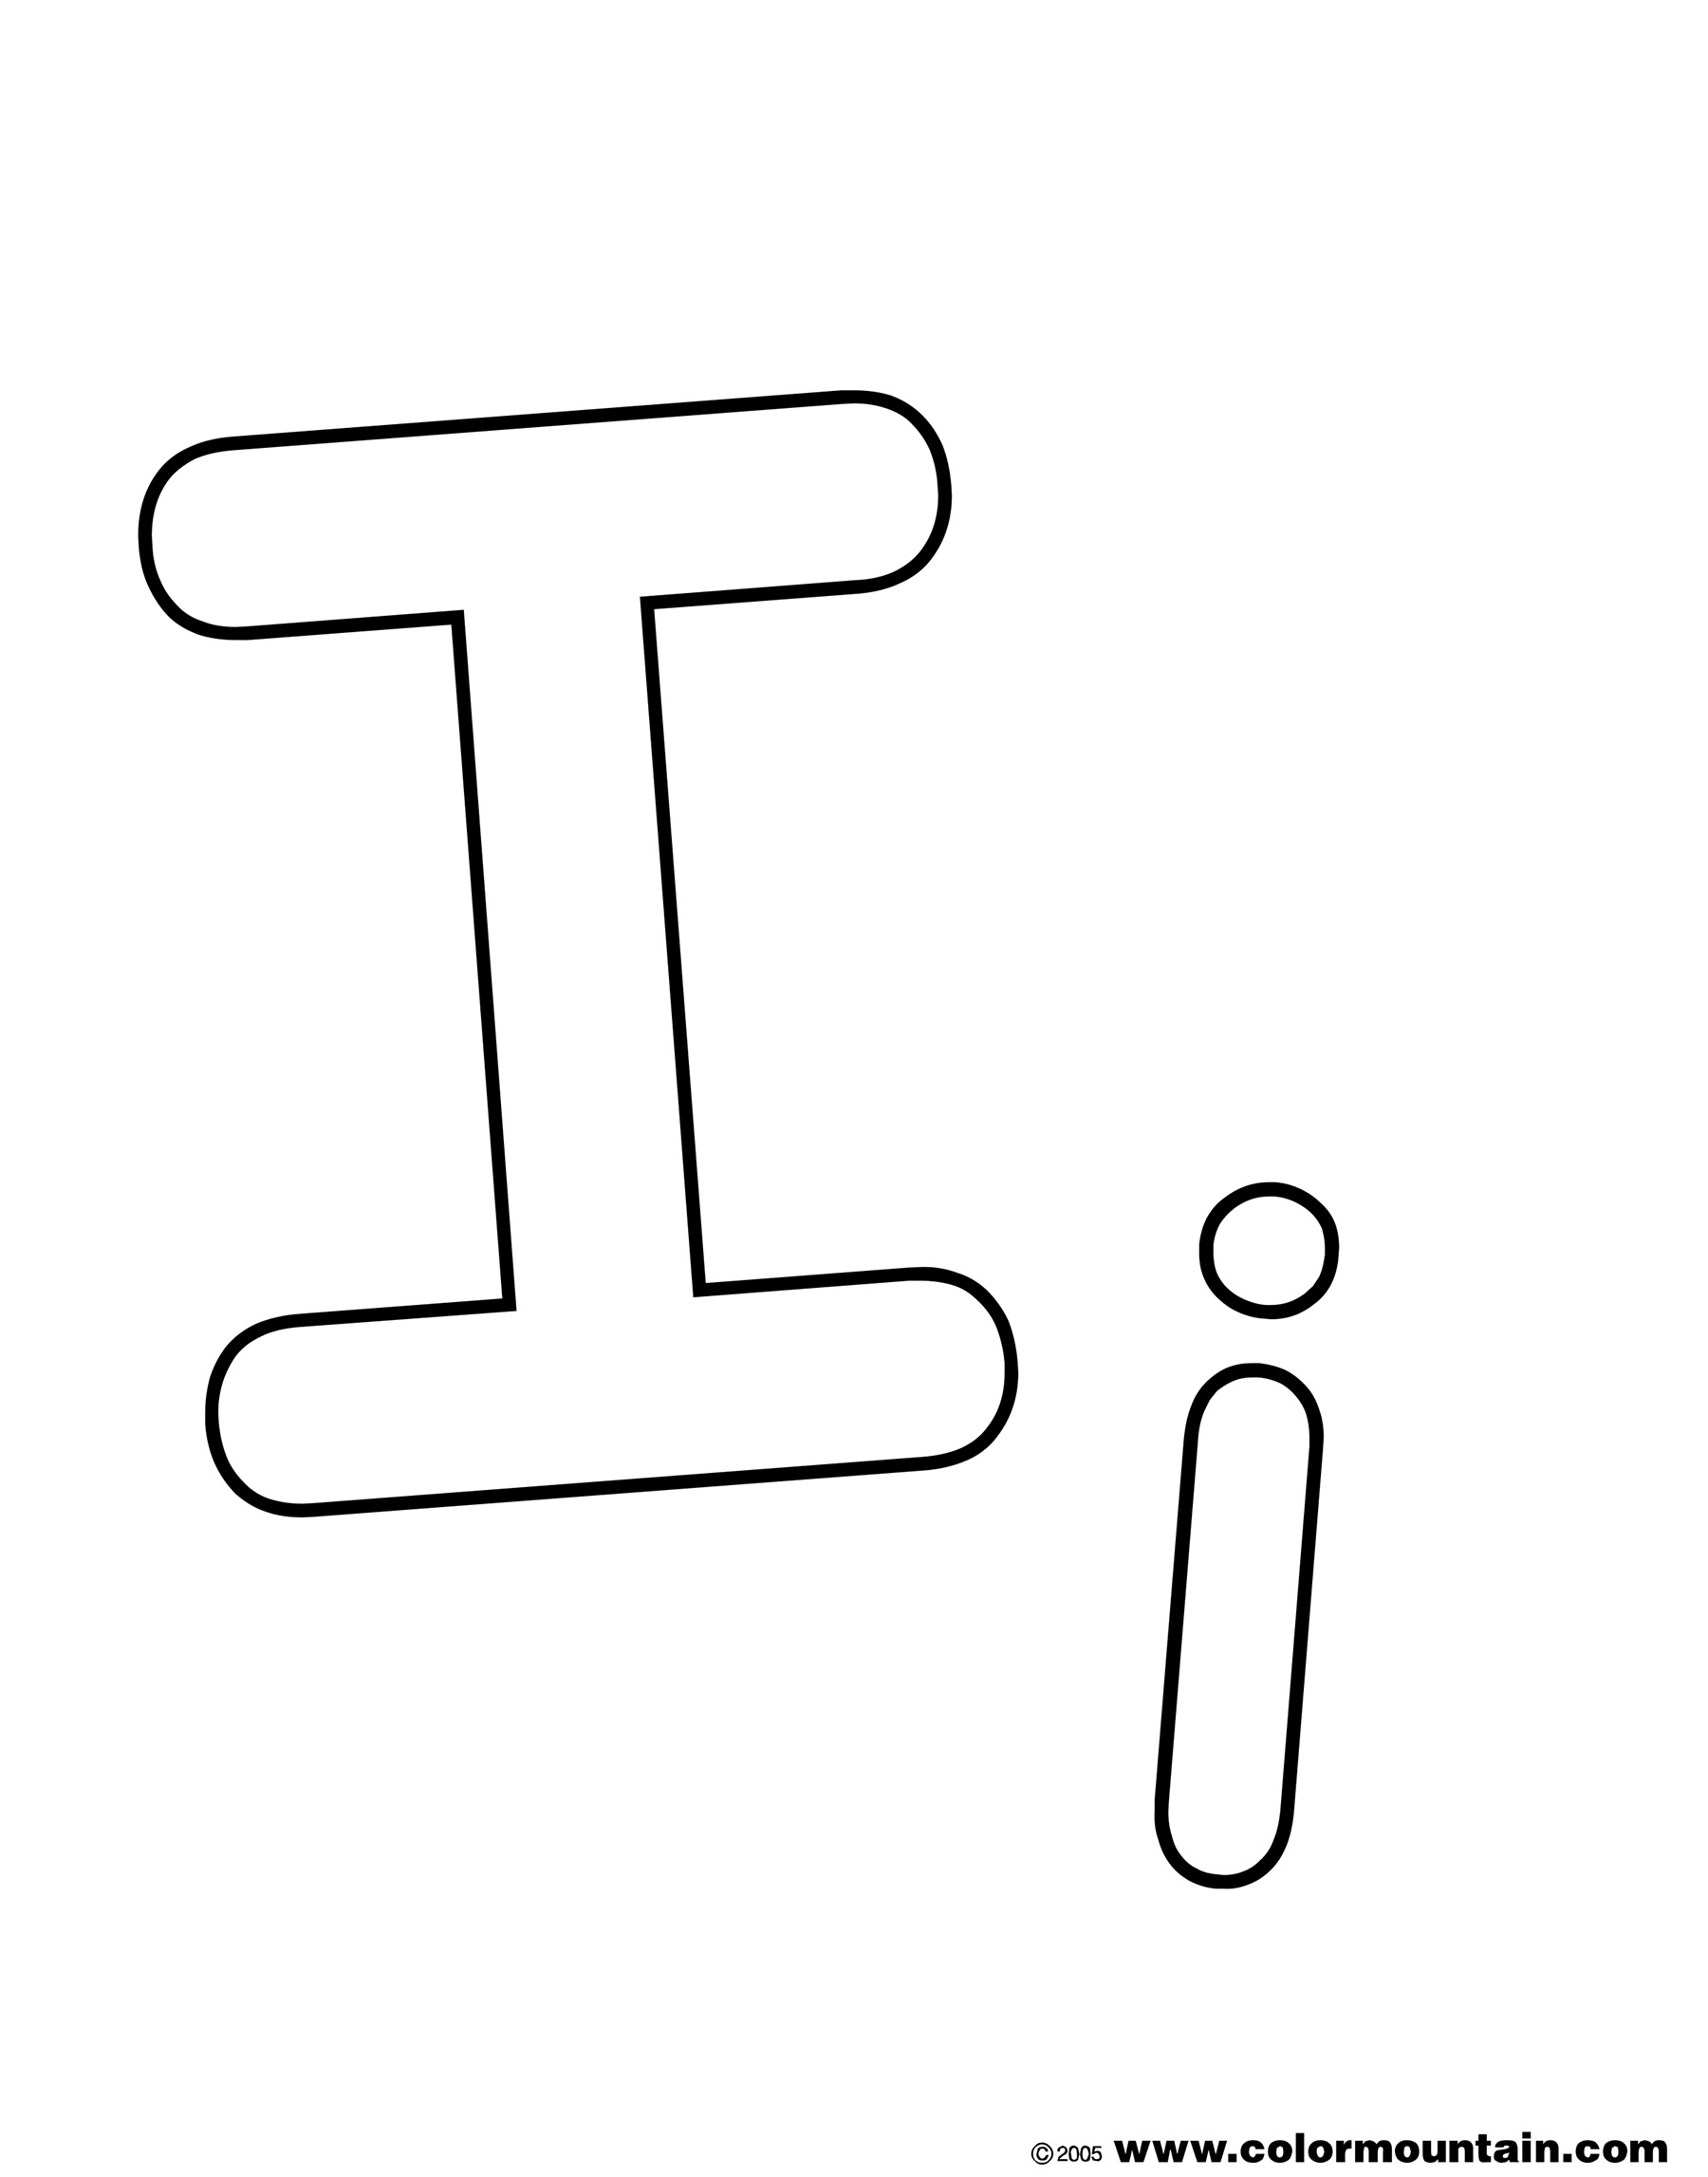 Free Letter I Coloring Pages For Preschool